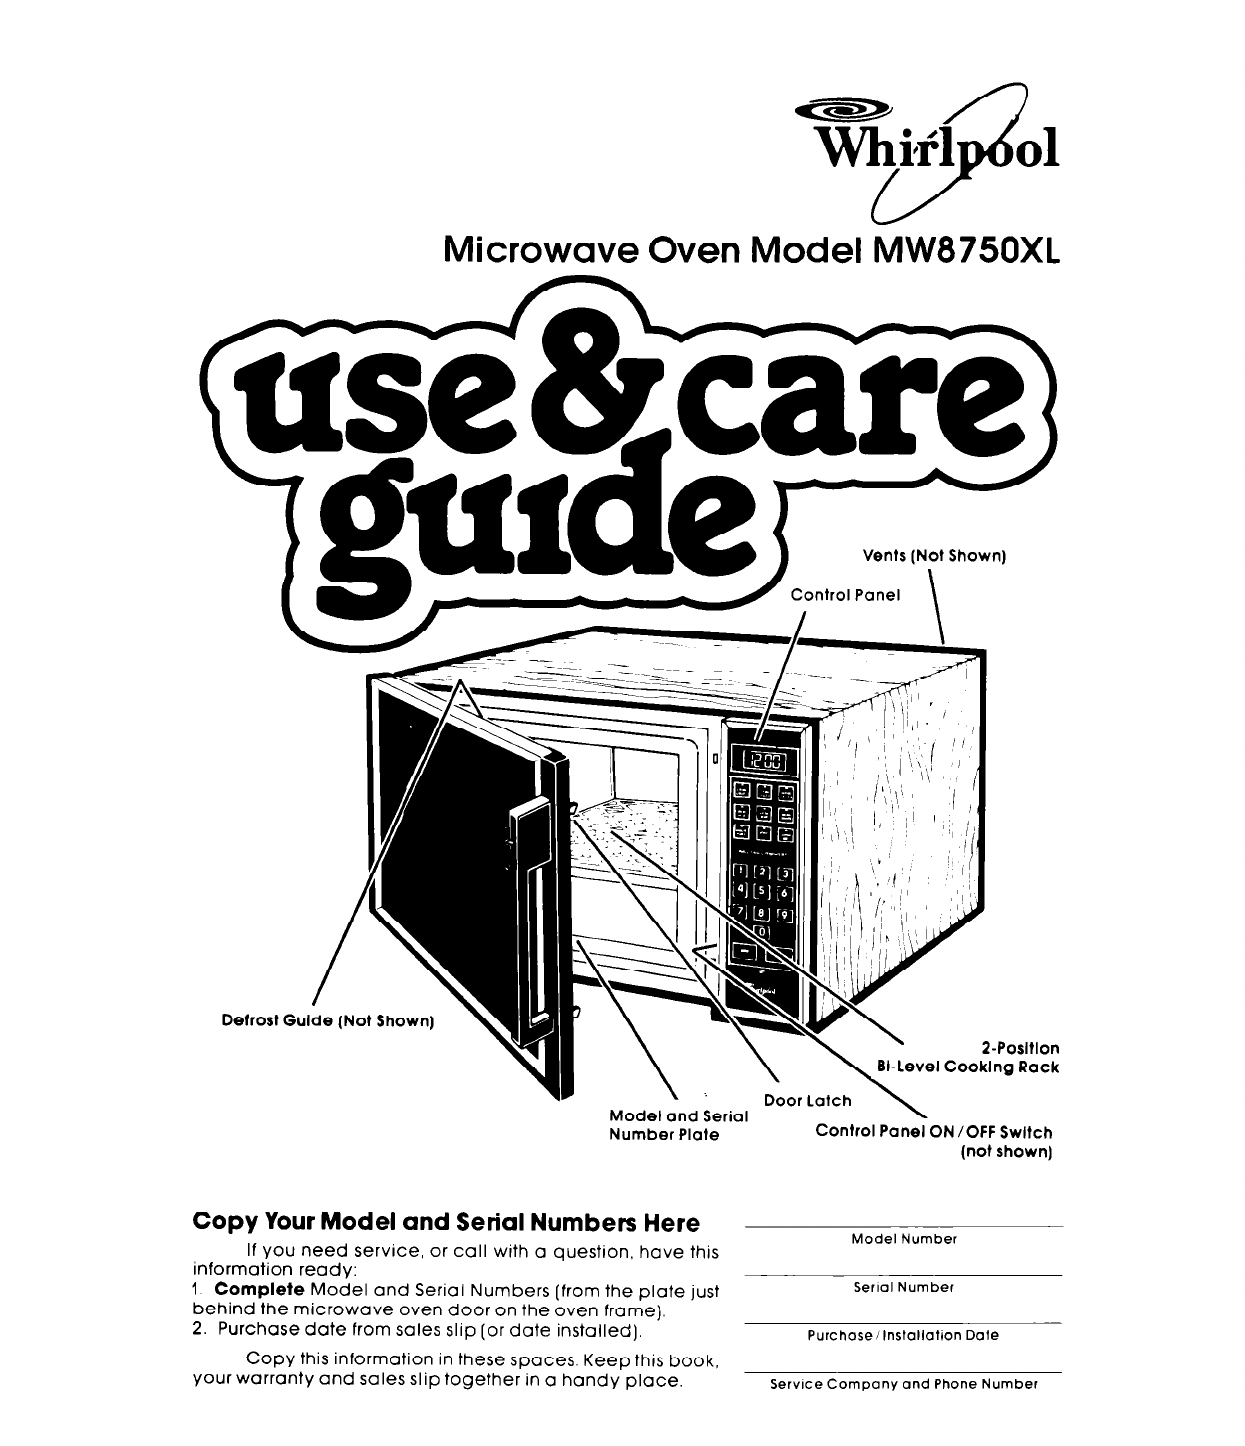 Whirlpool Microwave Oven MW8750XL User Guide